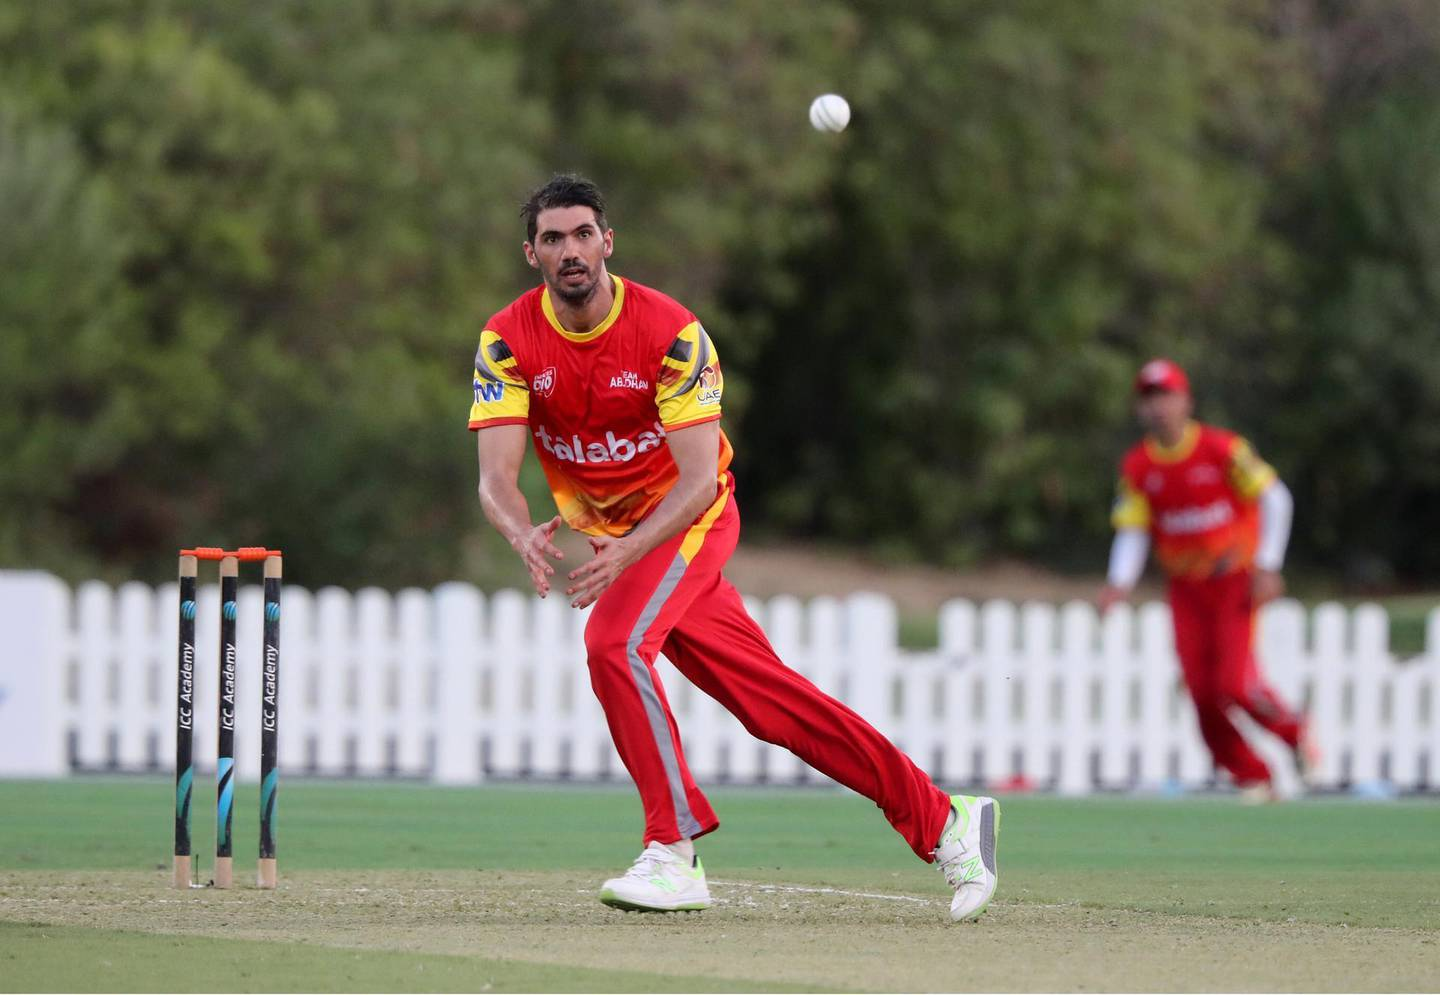 Dubai, United Arab Emirates - Reporter: N/A. Sport. Cricket. Abu Dhabi's former Zimbabwe test player Graeme Cremer bowls during the game between Abu Dhabi and Ajman in the Emirates D10. Friday, July 24th, 2020. Dubai. Chris Whiteoak / The National